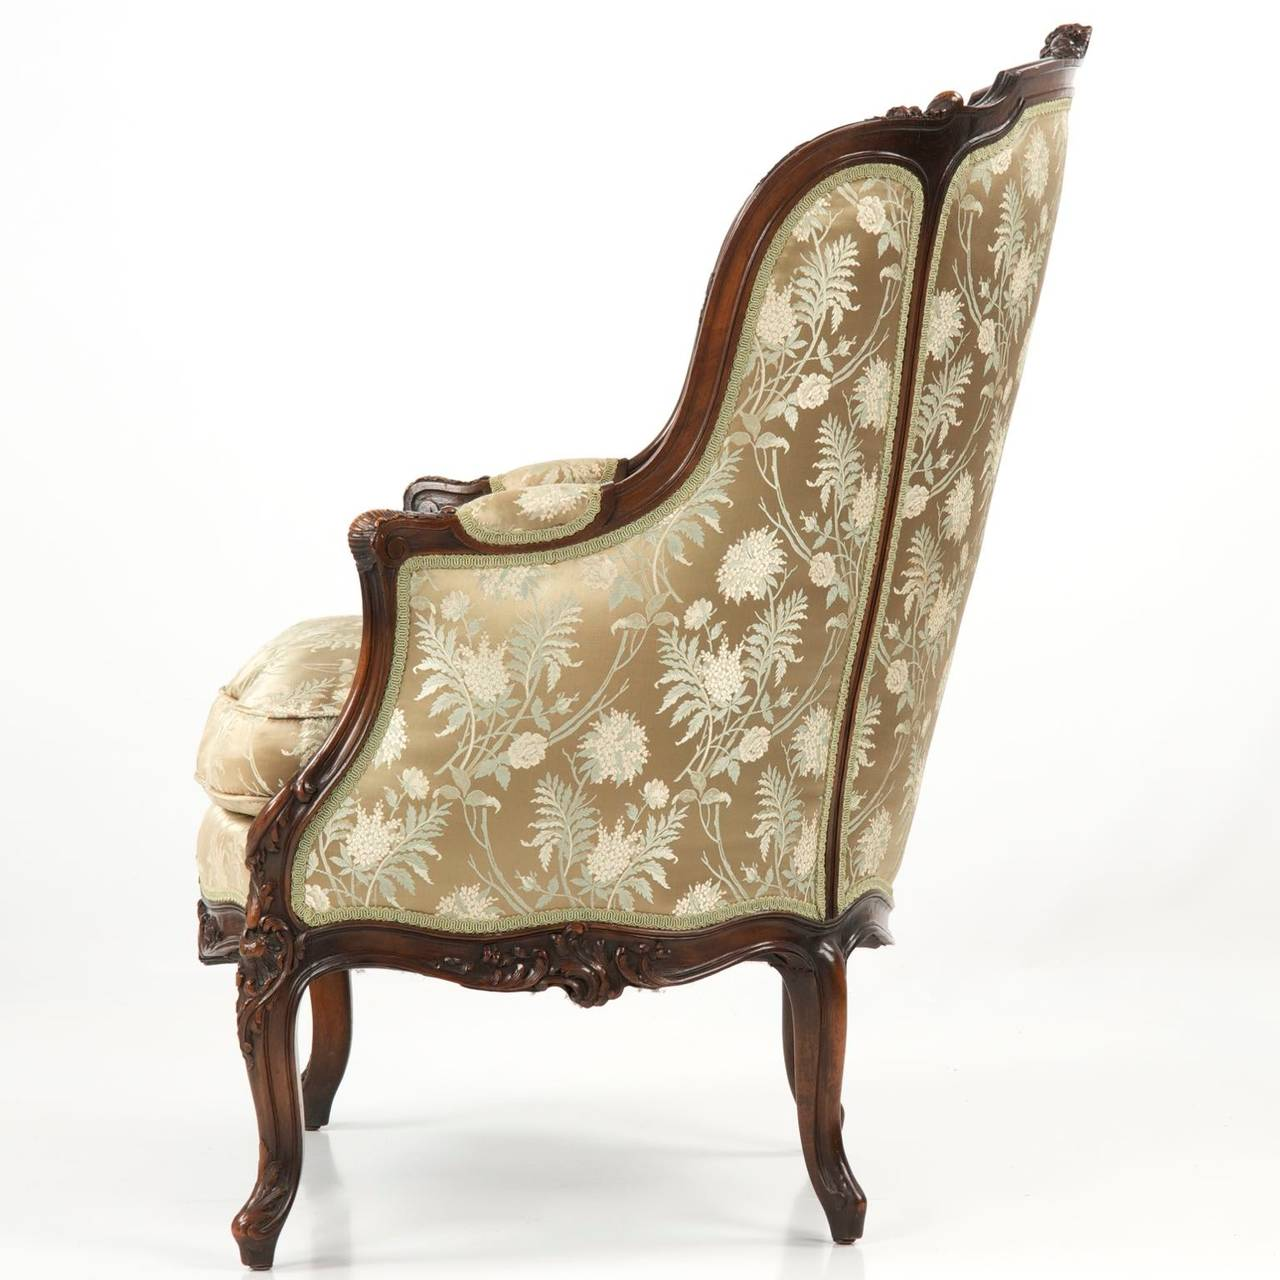 19th Century Rococo Revival Antique Bergere Armchair In Louis Xv Taste At 1stdibs